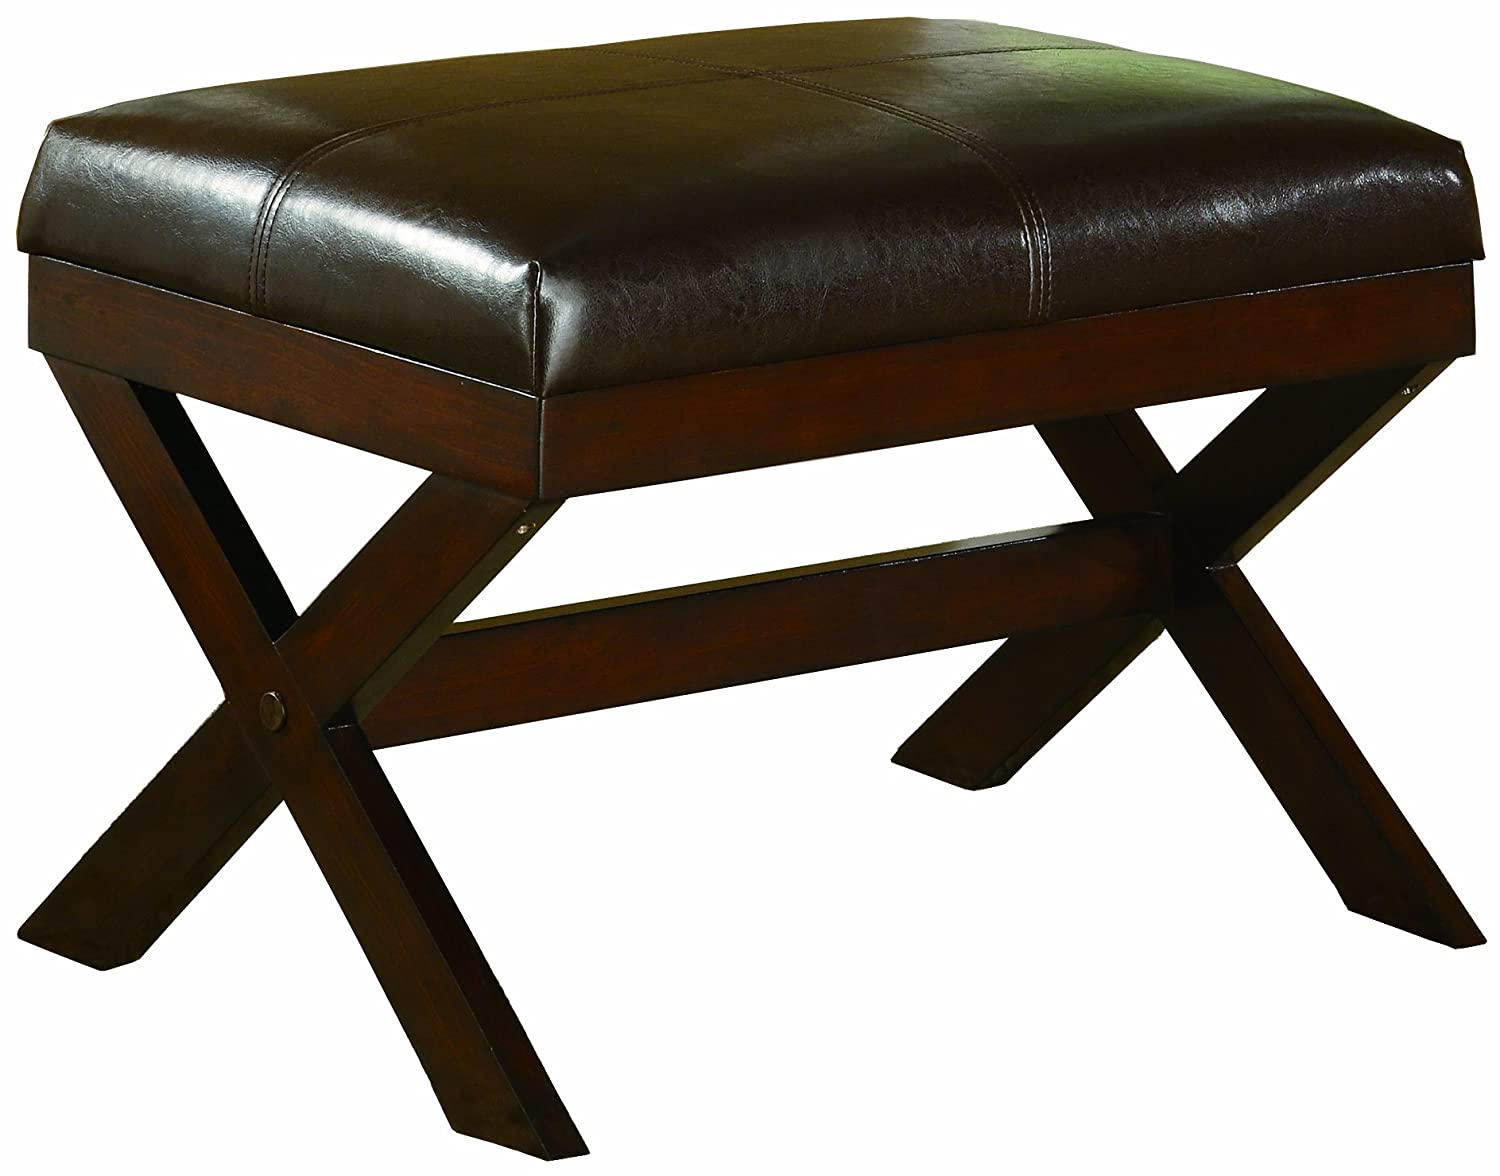 pictures ideas full fascinating brown stoolblack benchleather black of bench x benchbrown leather stool size